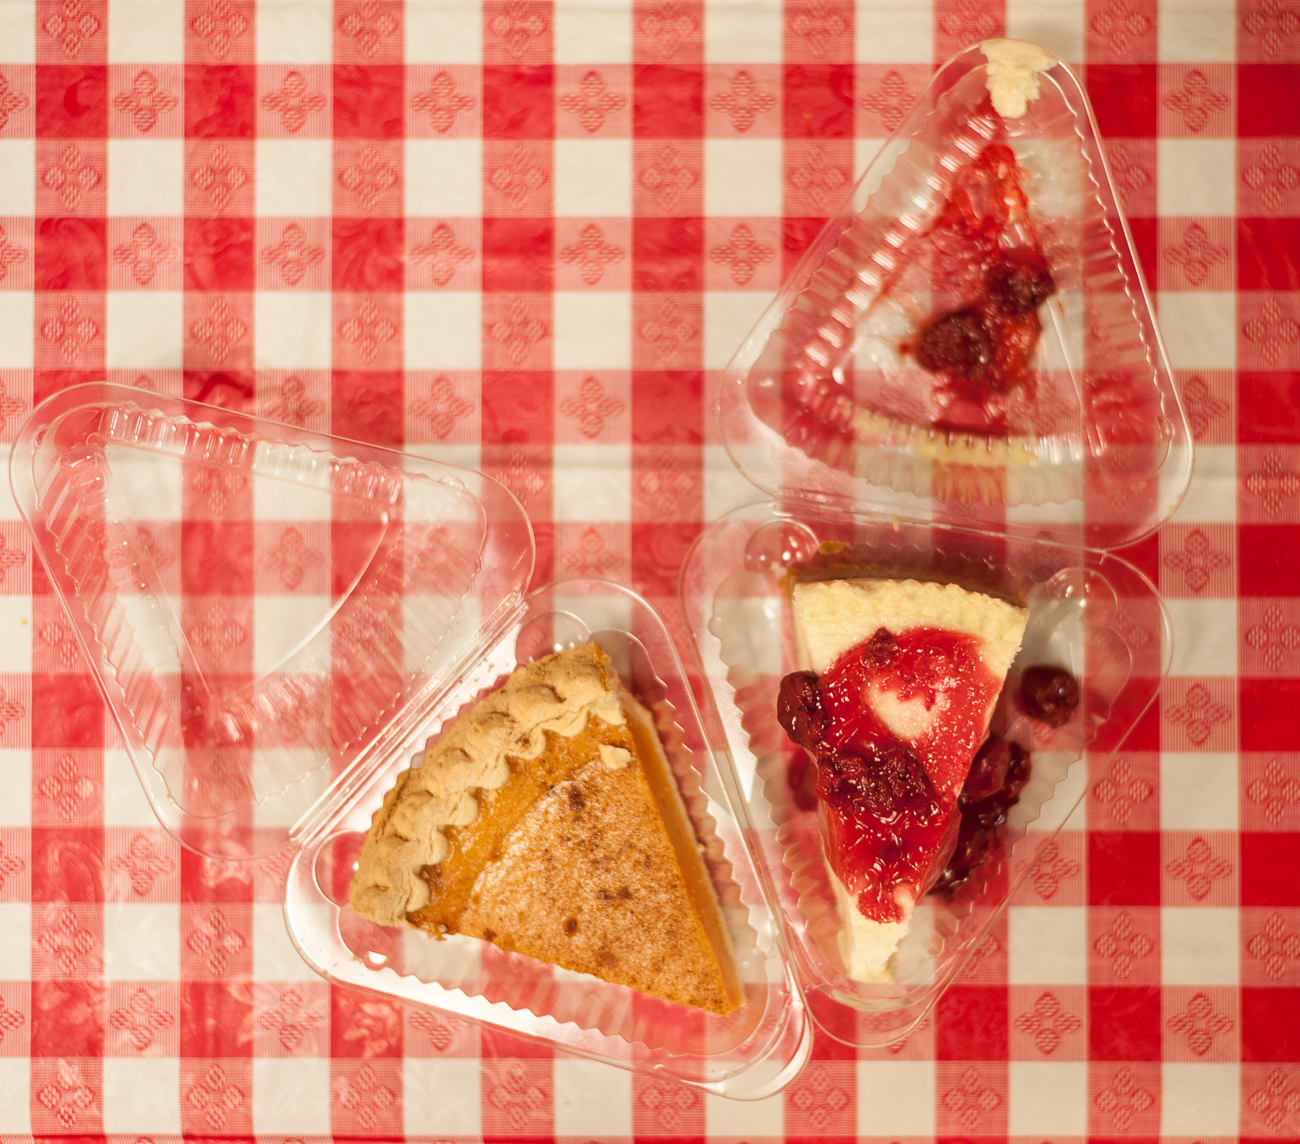 Sweet potato pie cheesecake and strawberry pie{ }/ Image: Kellie Coleman // Published: 6.19.20